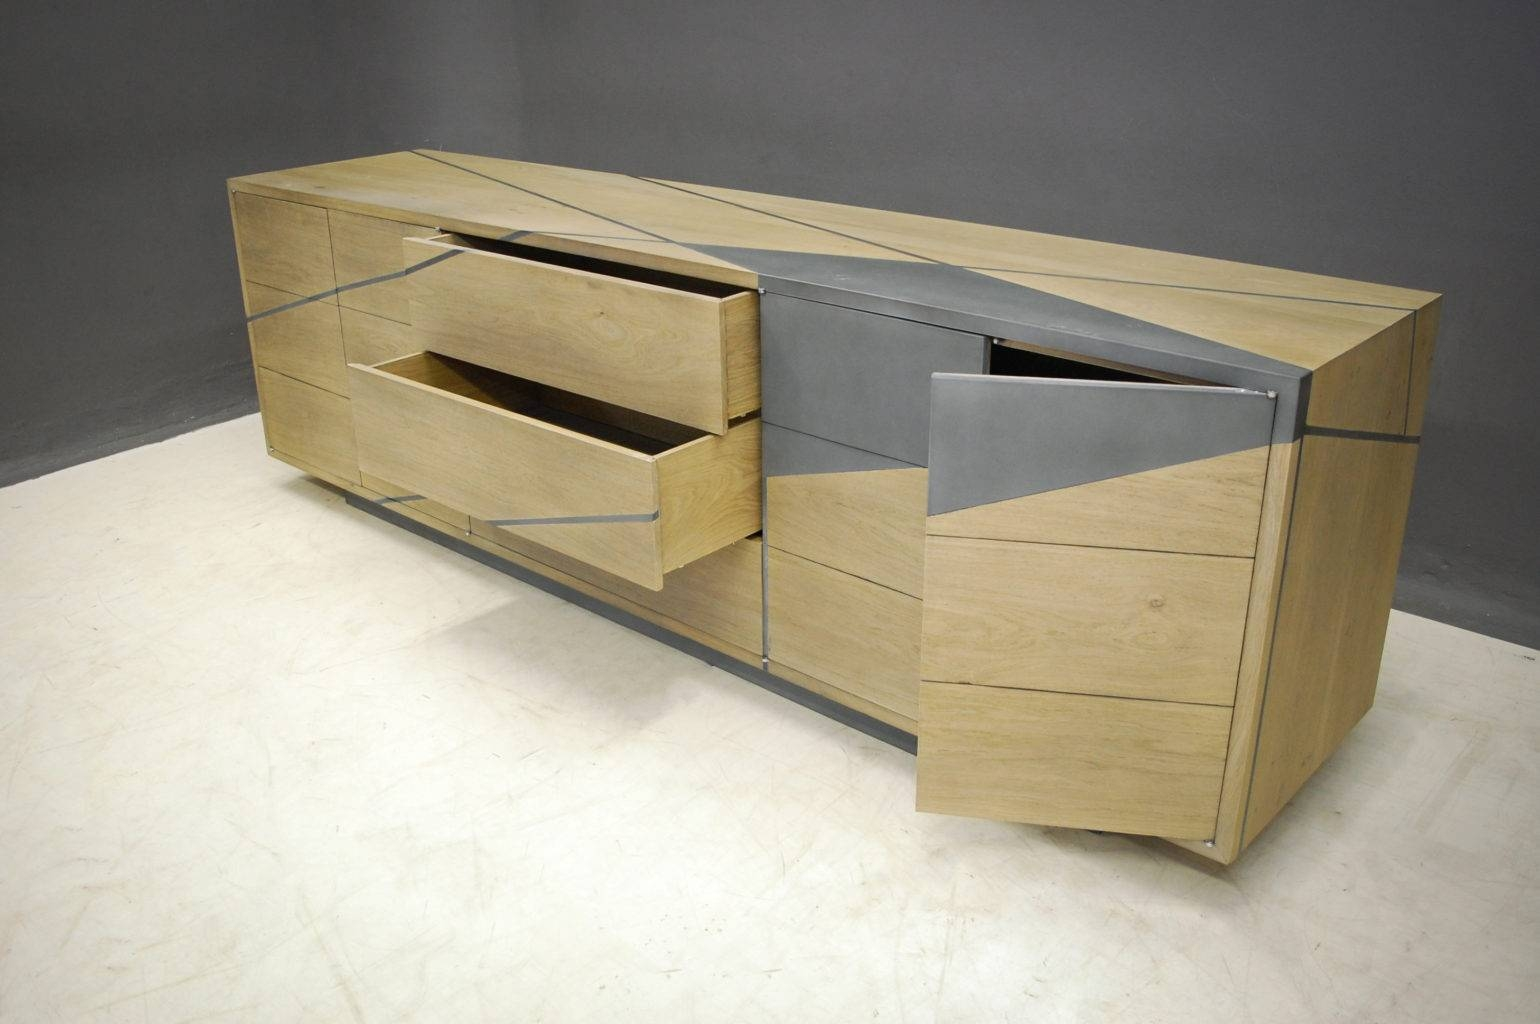 Pierre Cronje | Sideboards With Most Current Bespoke Sideboards (#13 of 15)